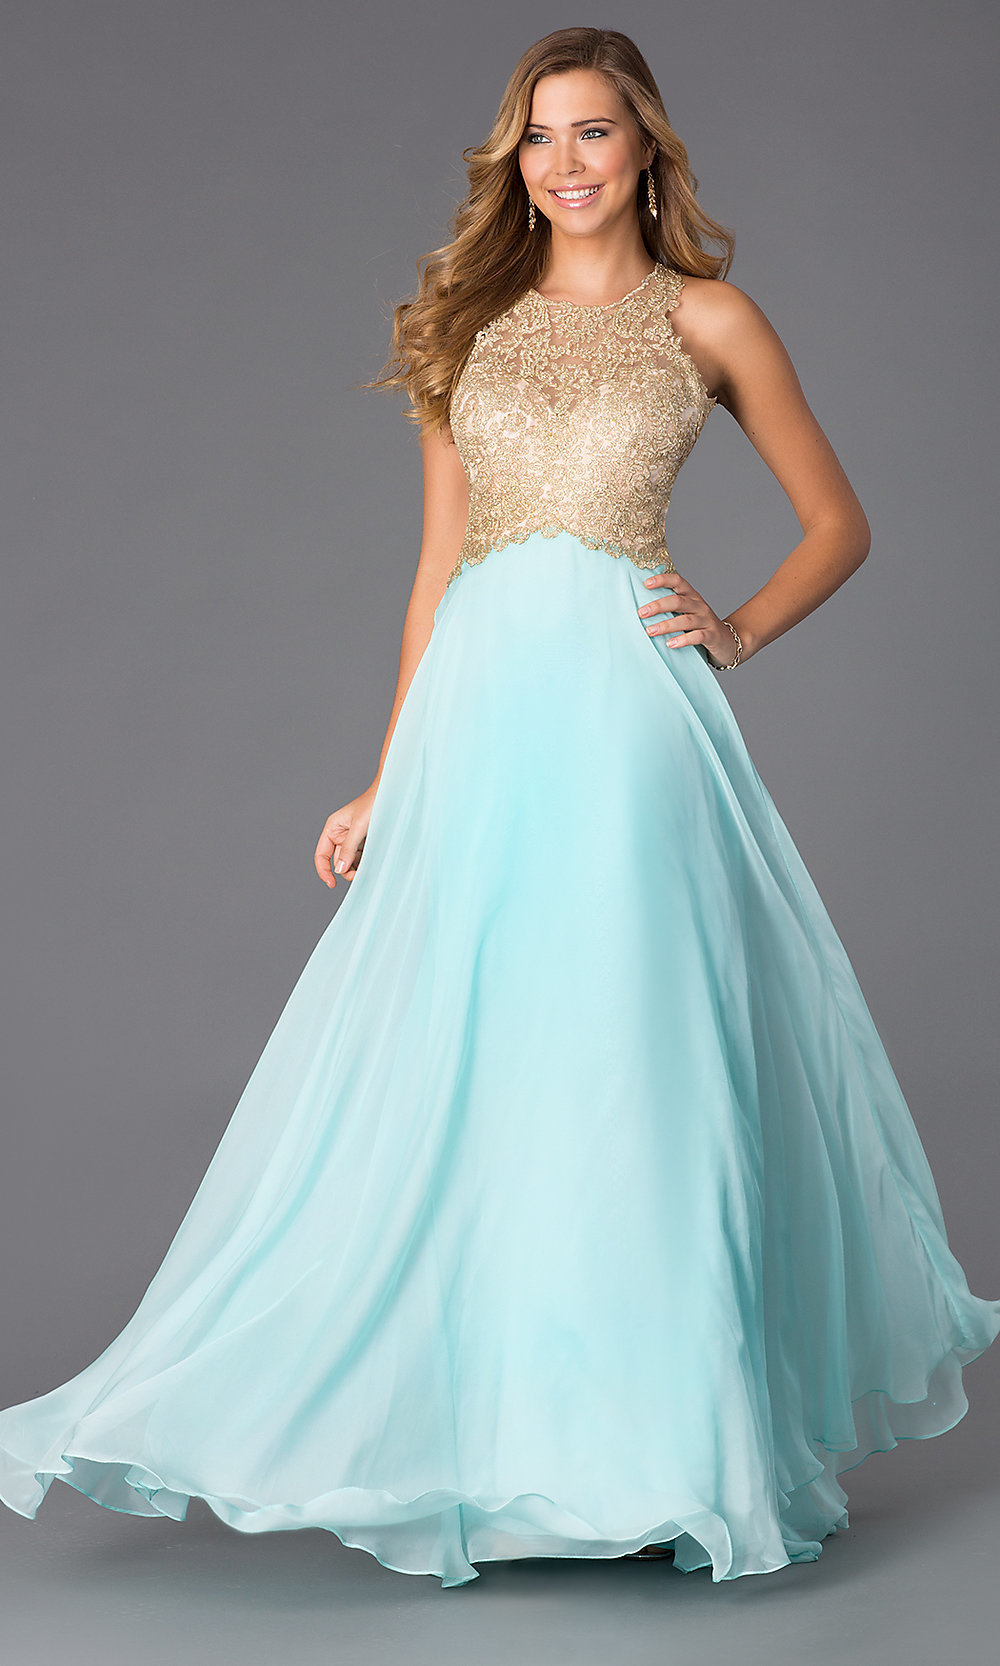 Aqua Long Evening Gown with Lace - PromGirl